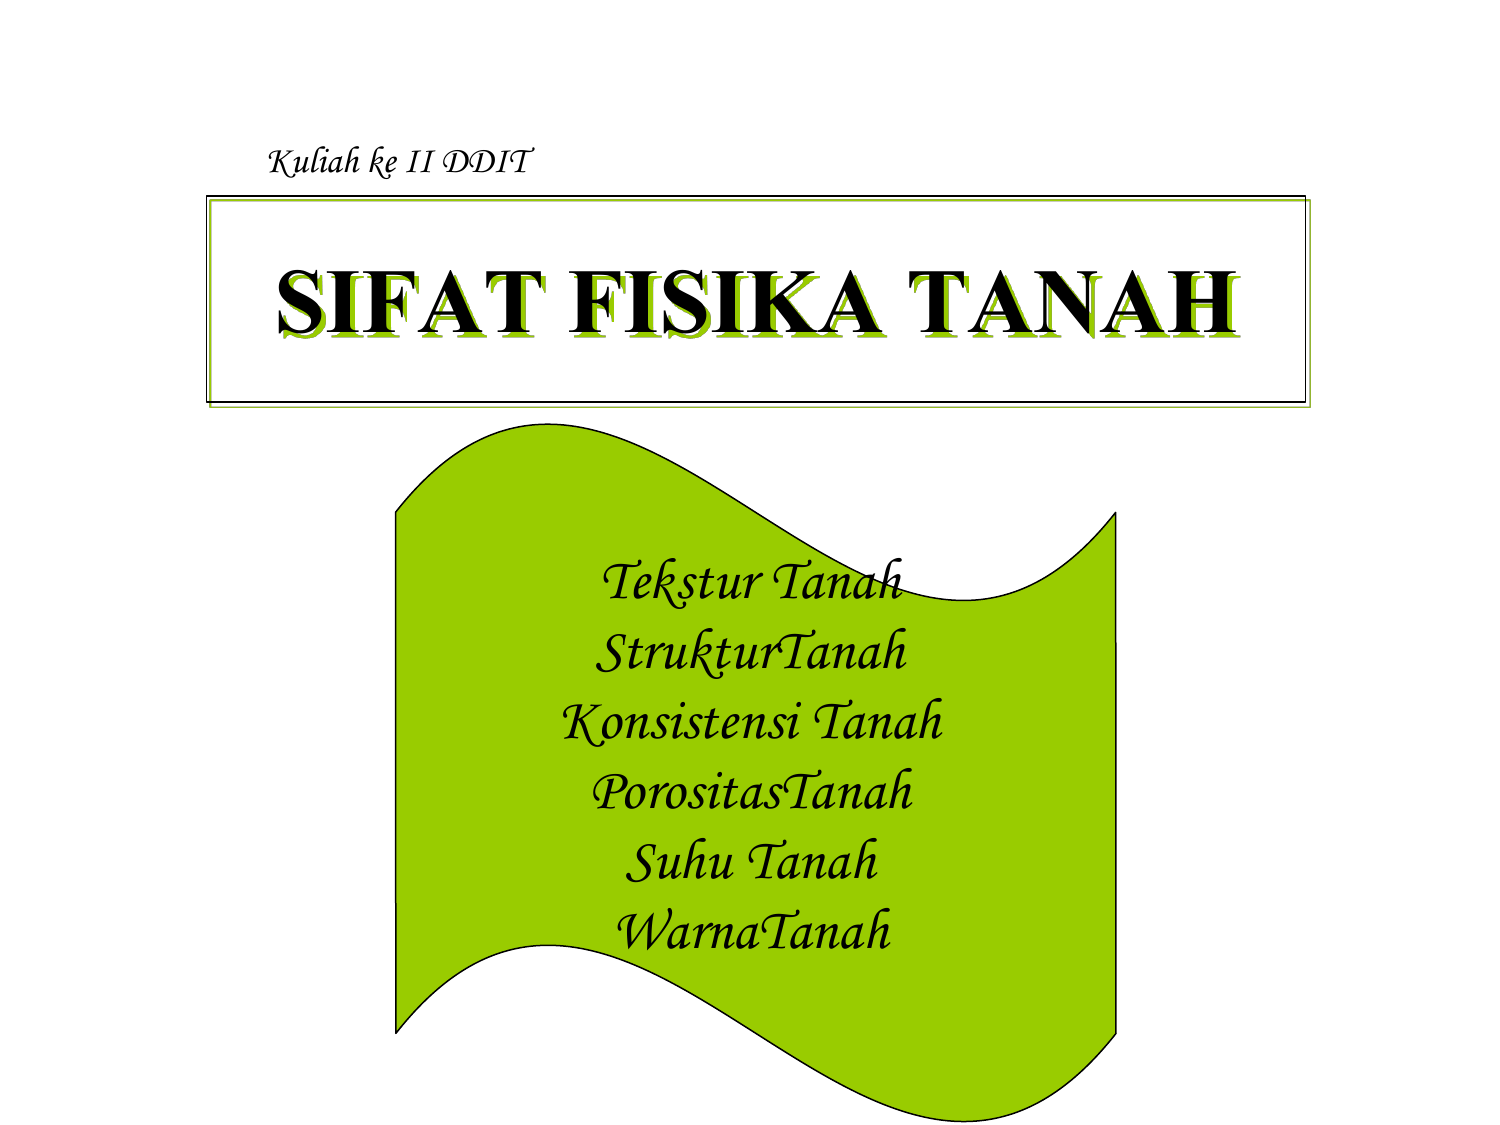 Sifat fisika tanah ccuart Gallery